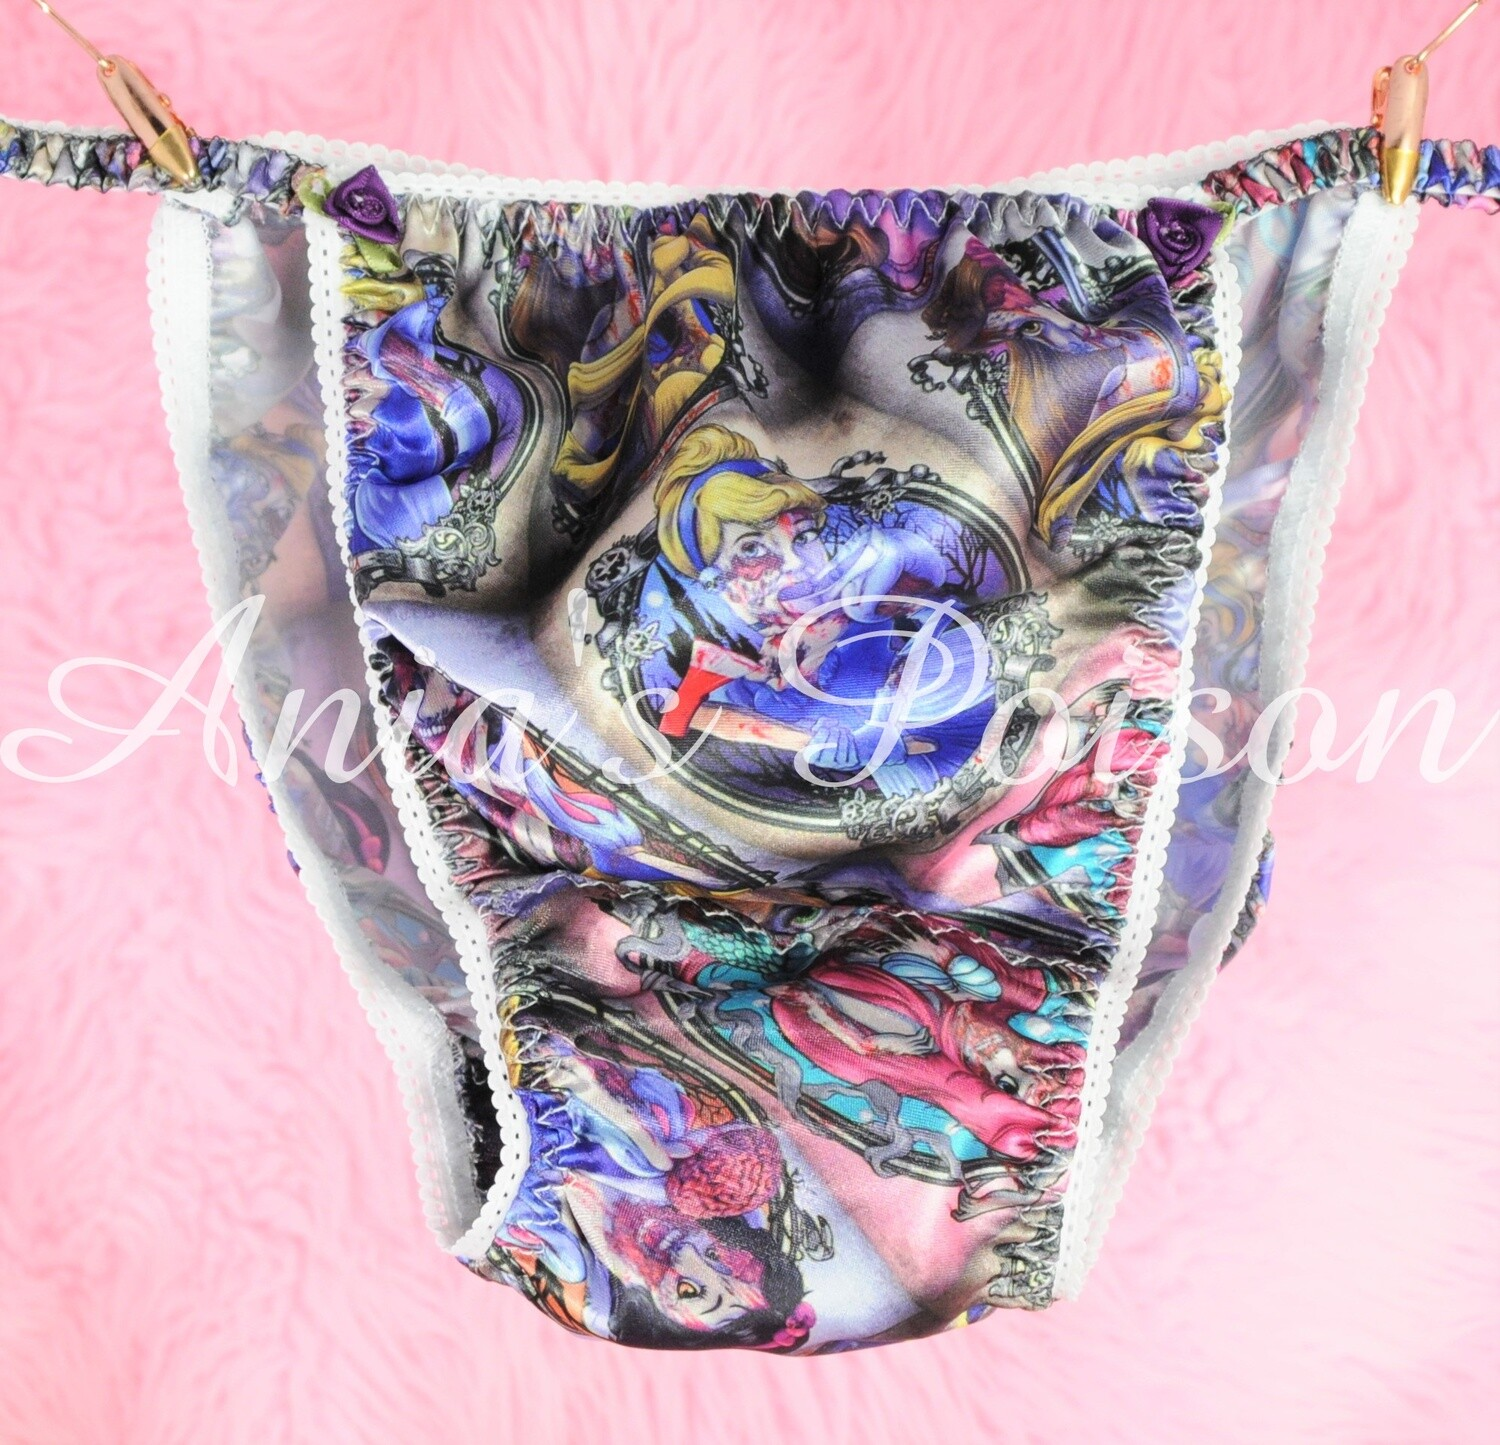 Ania's Poison Zombie Princess Horror Halloween Print Super Rare 100% polyester SATIN string bikini sissy mens underwear panties